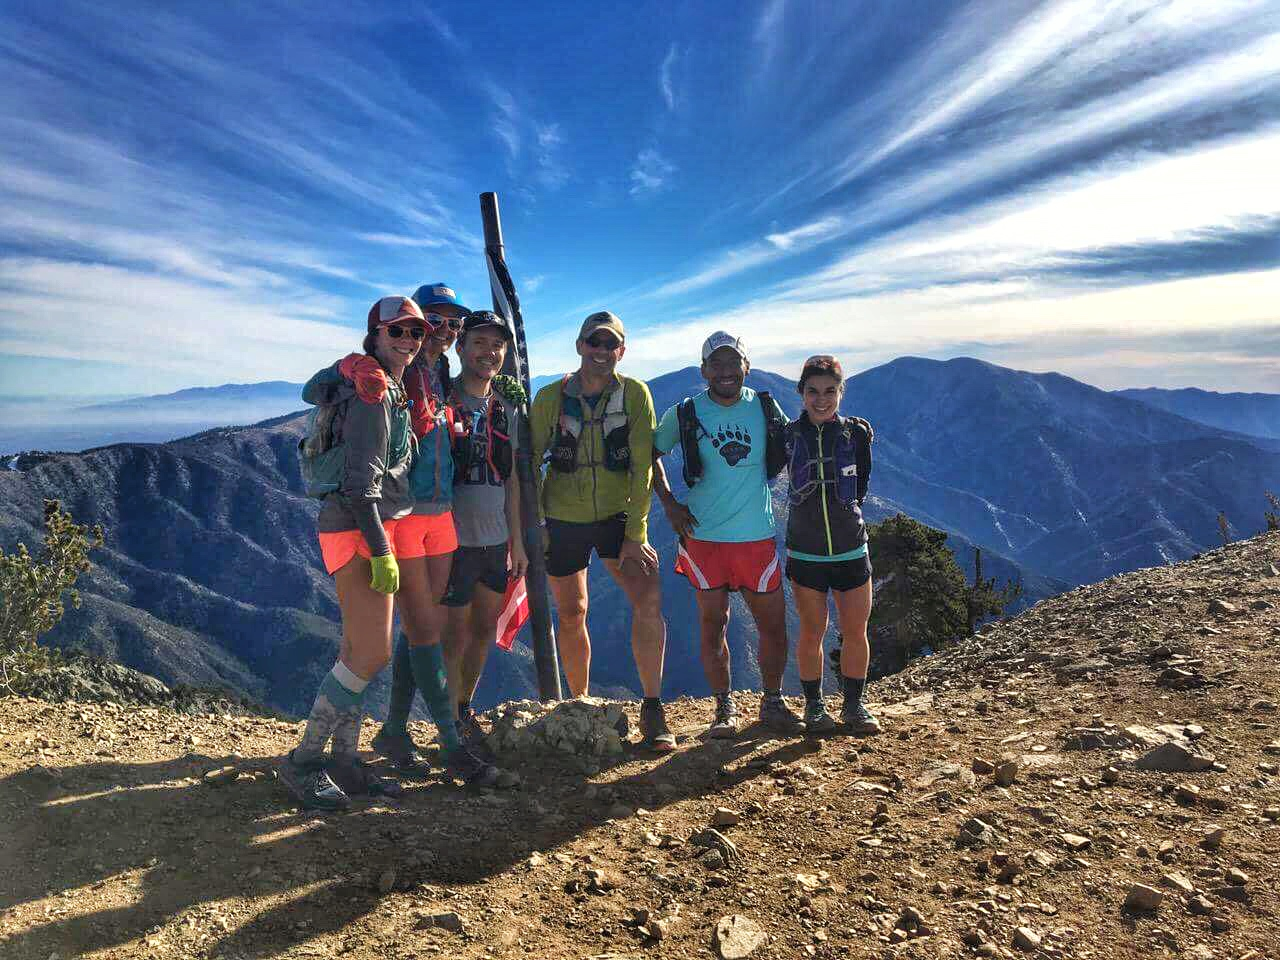 Mile 4 of 22- Mt Baden Powell